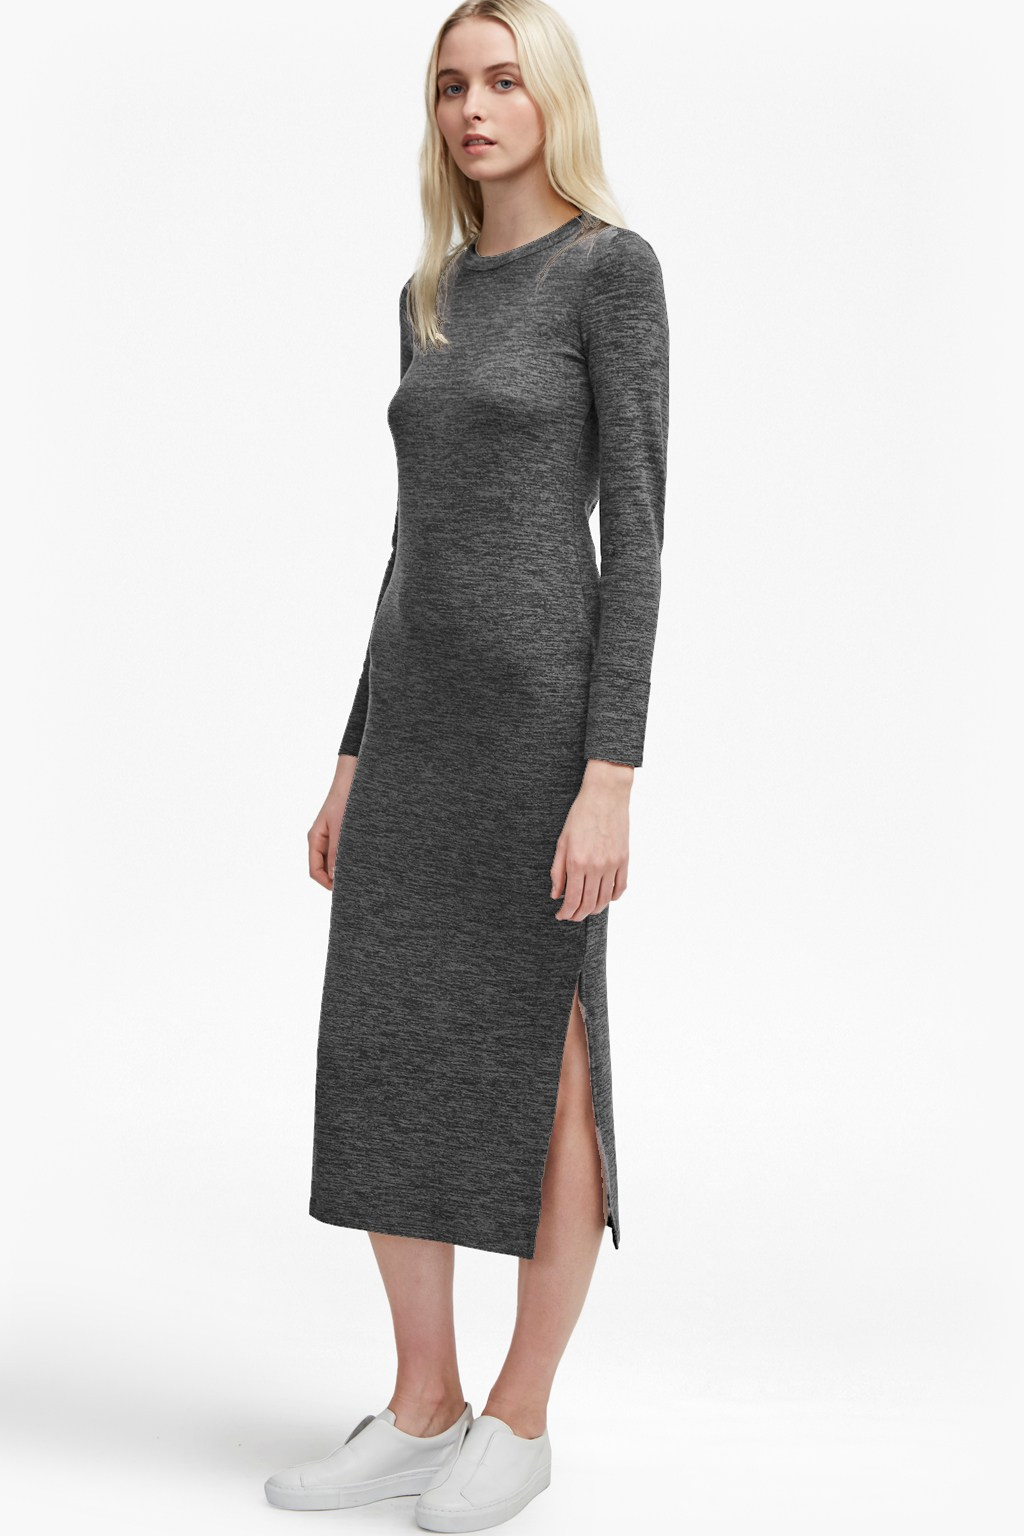 7eb8cf74a0d Sweeter Sweater Bodycon Midi Dress. loading images.